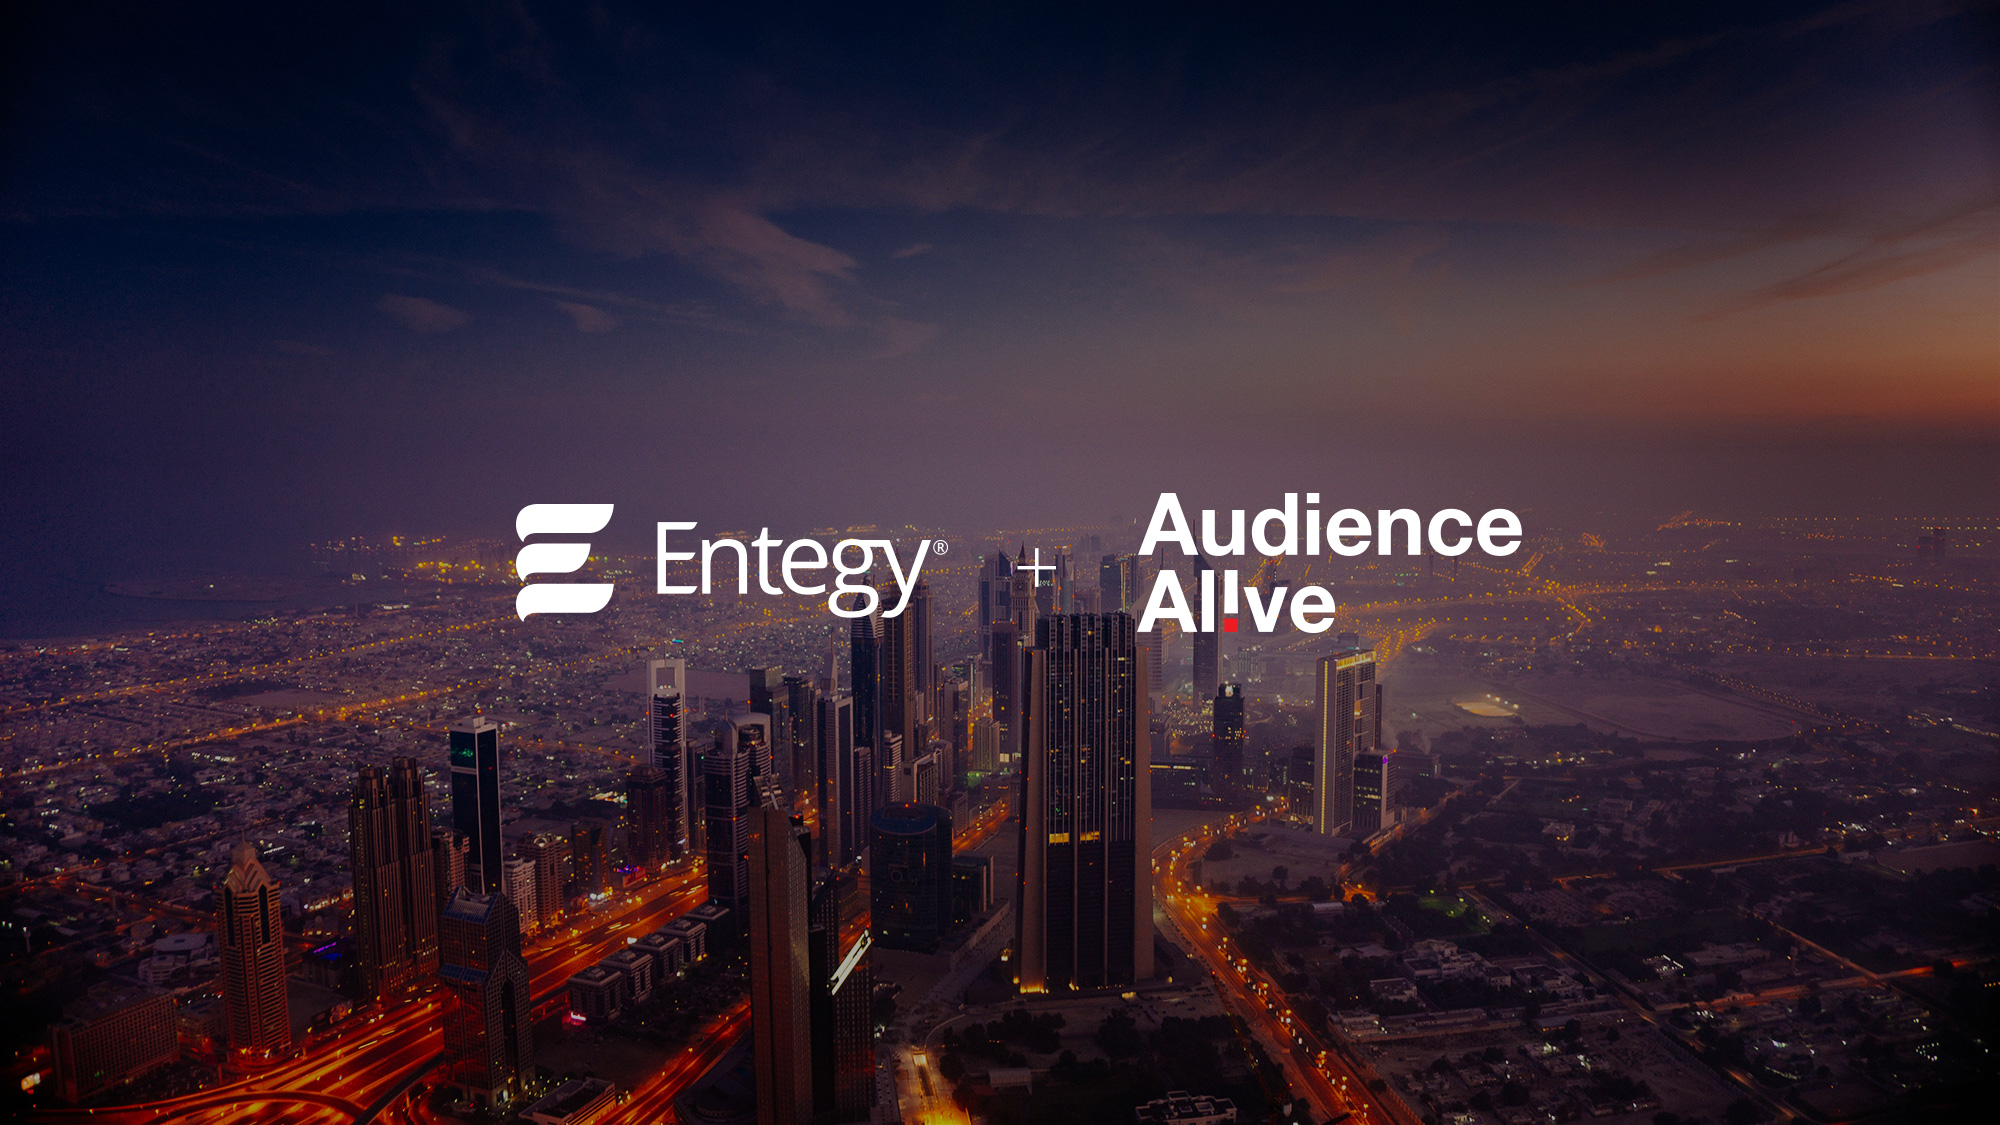 entegy and audience alive logos over photo of Dubai